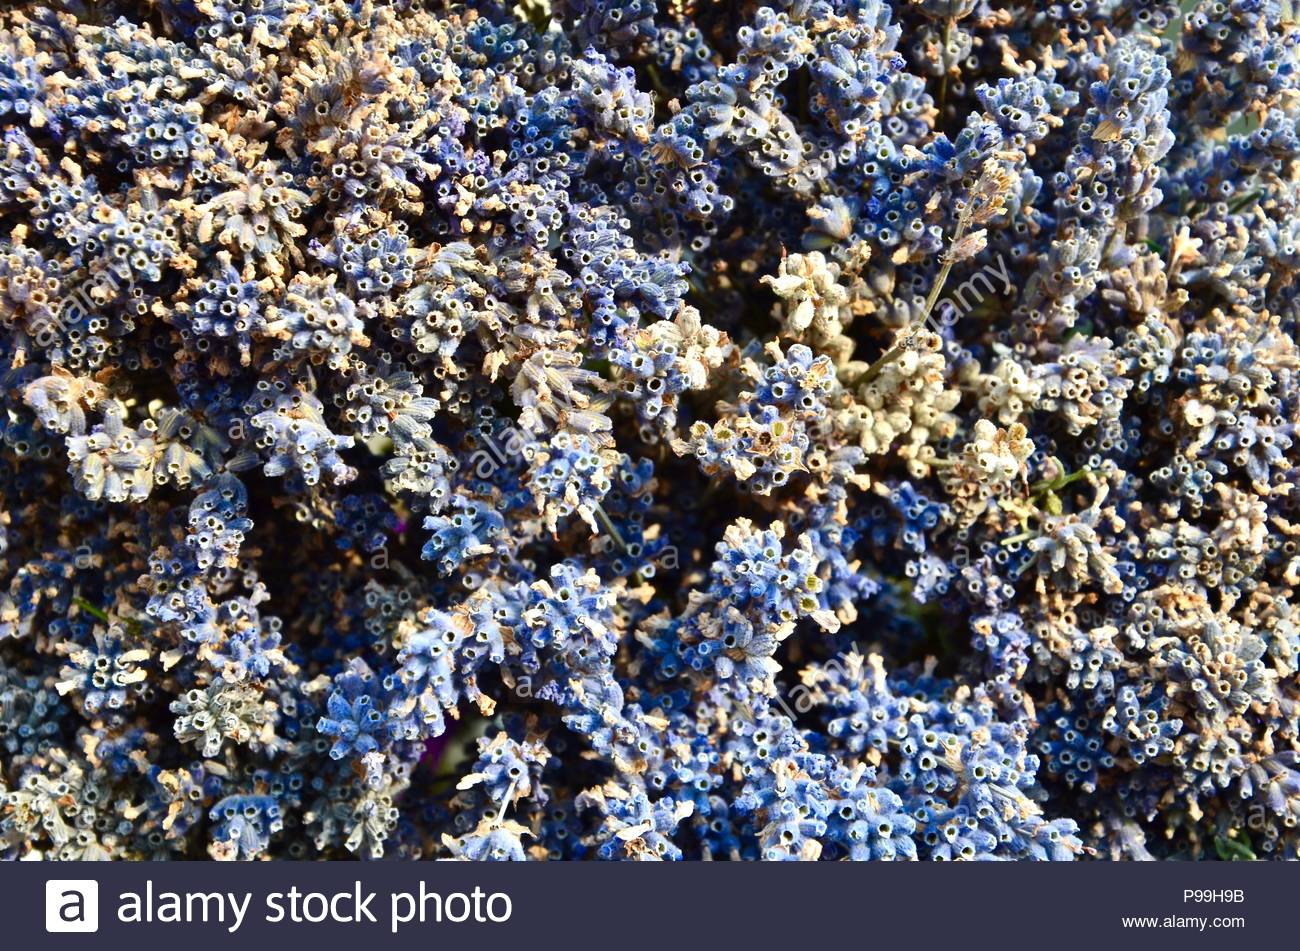 Dried lavender flowers, closeup, aromatic, Hildegard von Bingen, women's health, herbal, aromatherapy, health, natural, essential, homeopathy - Stock Image